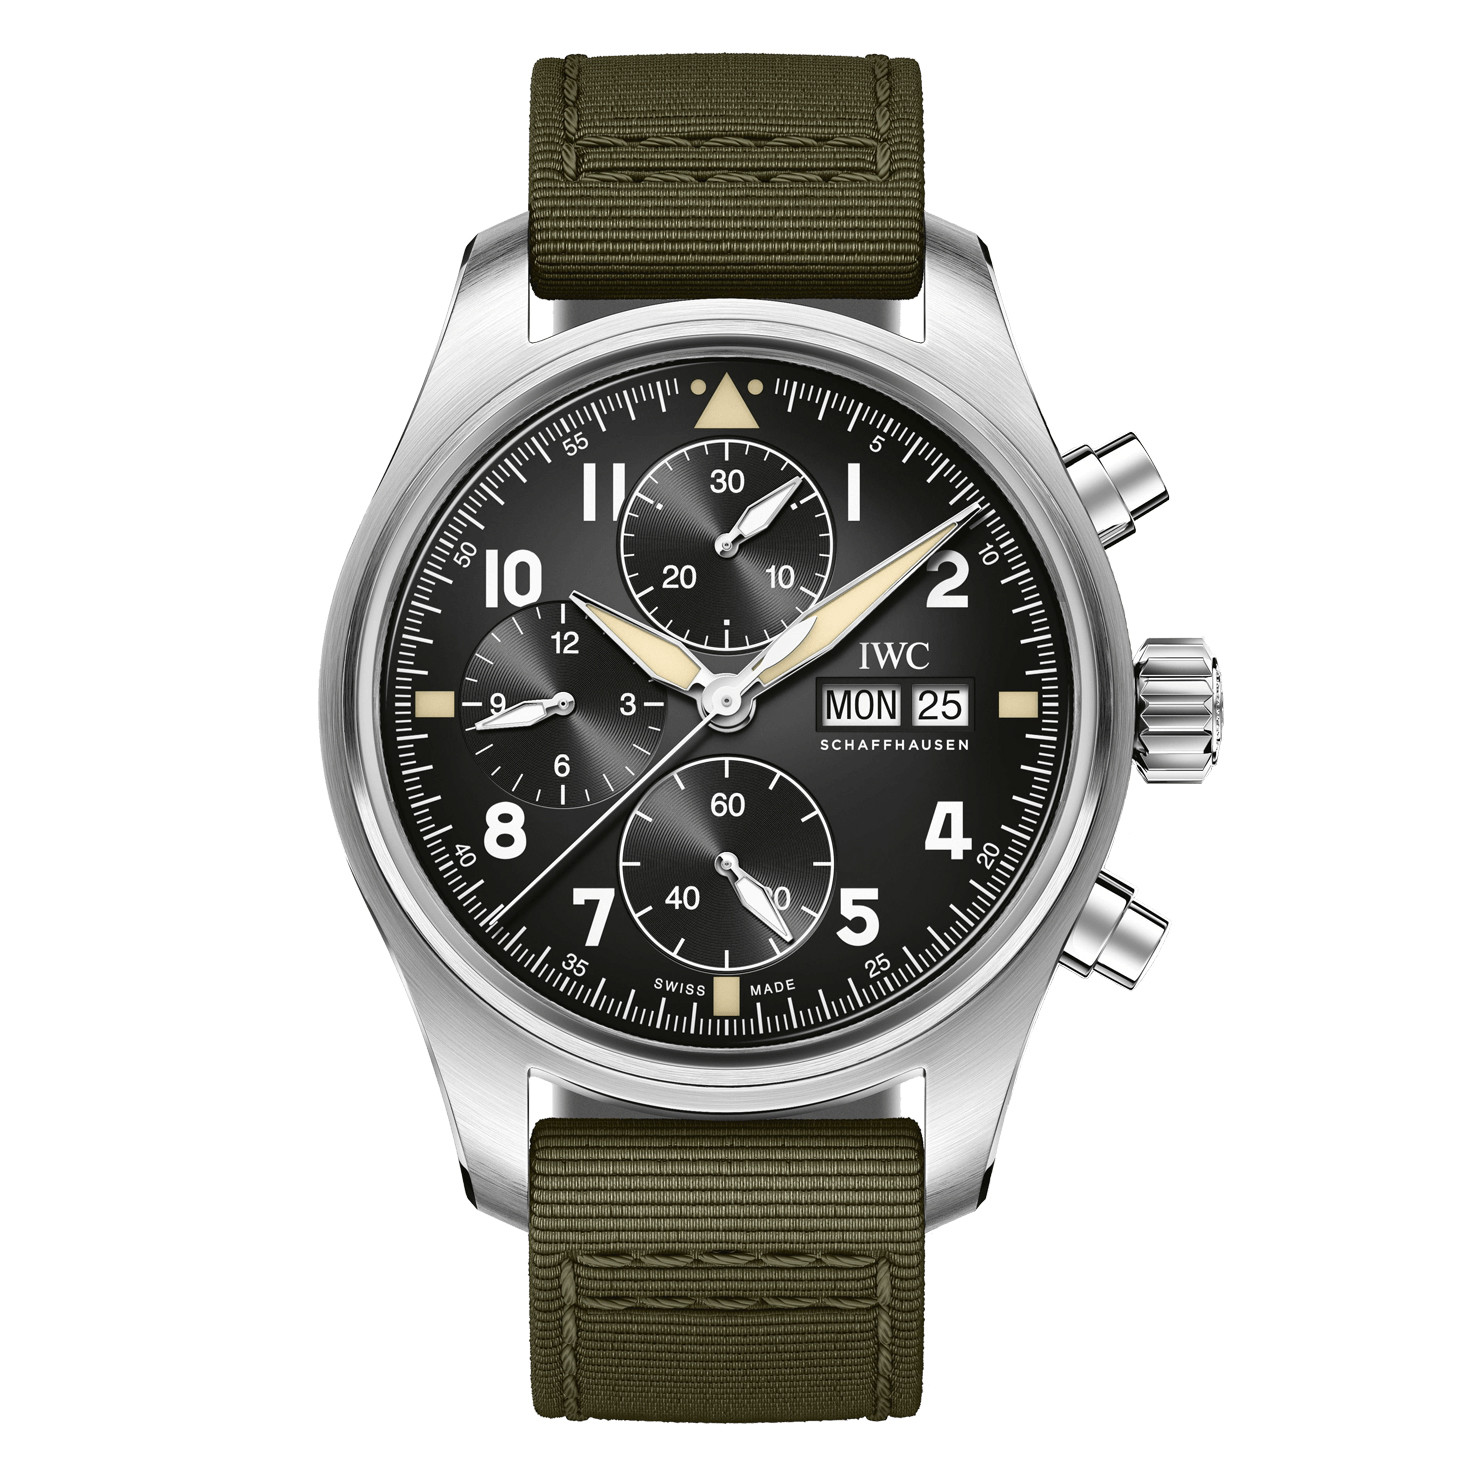 Pilot's Watch Chronograph Spitfire (IW387901)